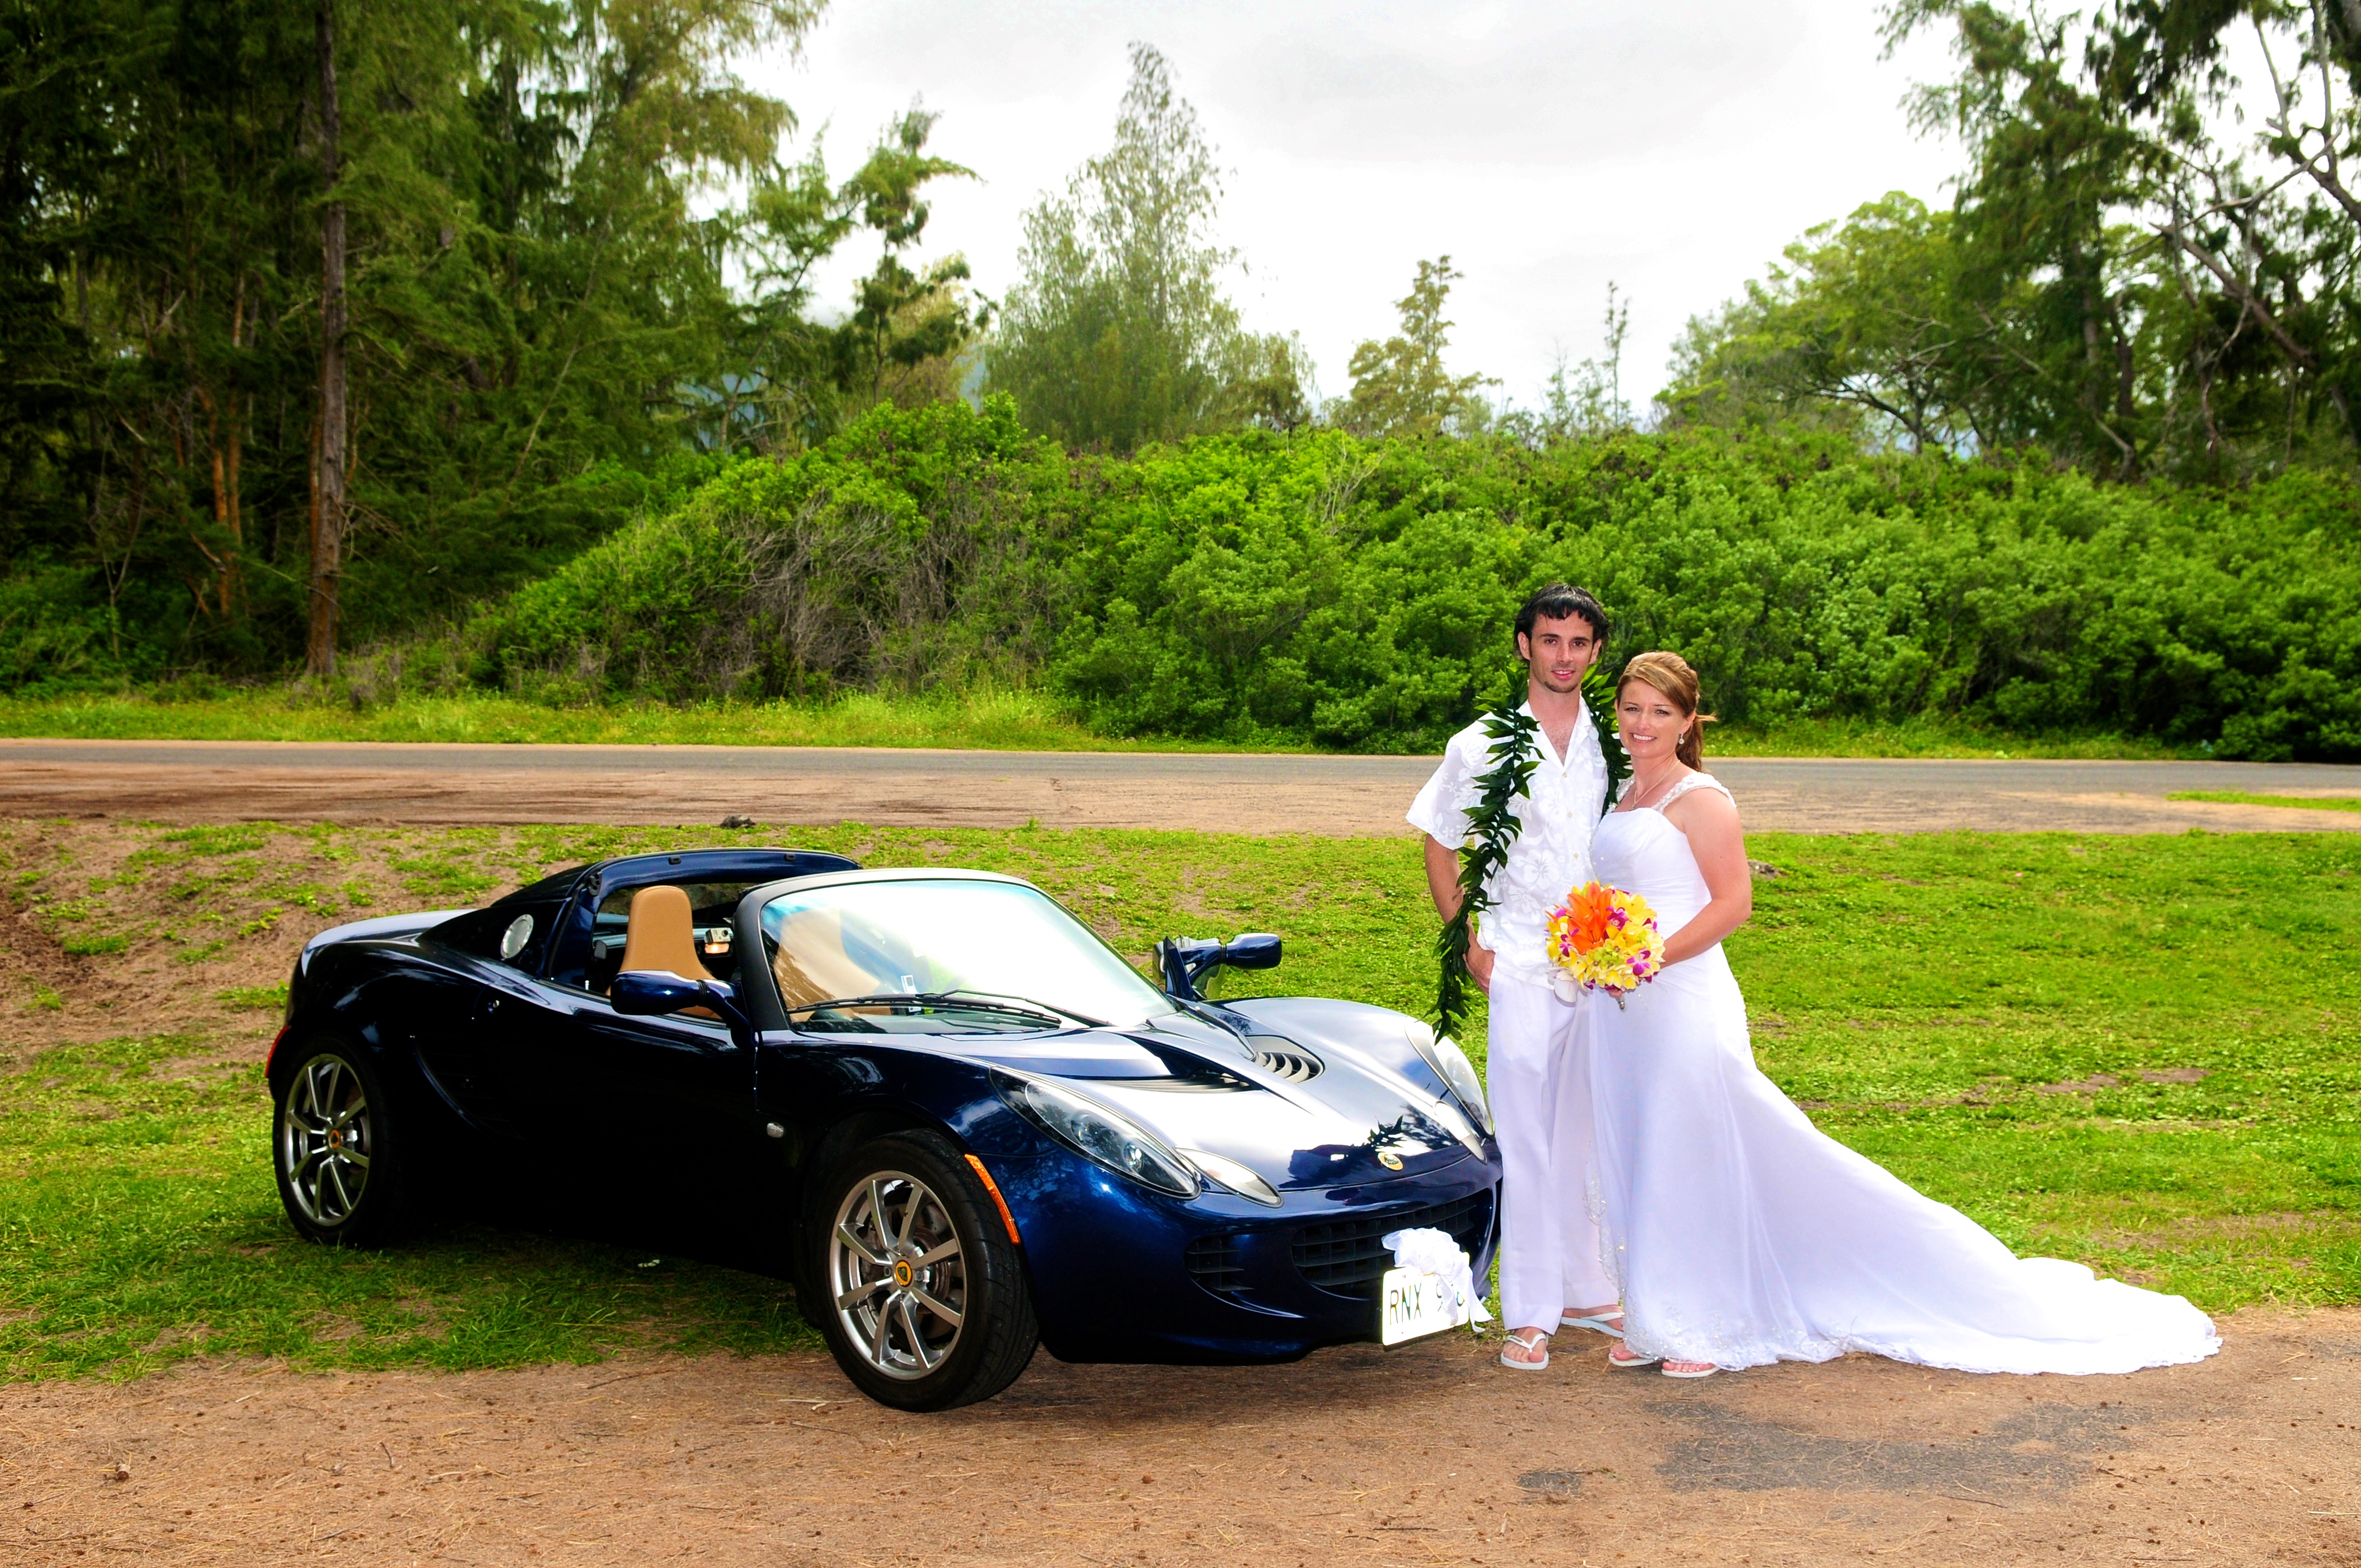 alohaislandweddings- Lotus car -22